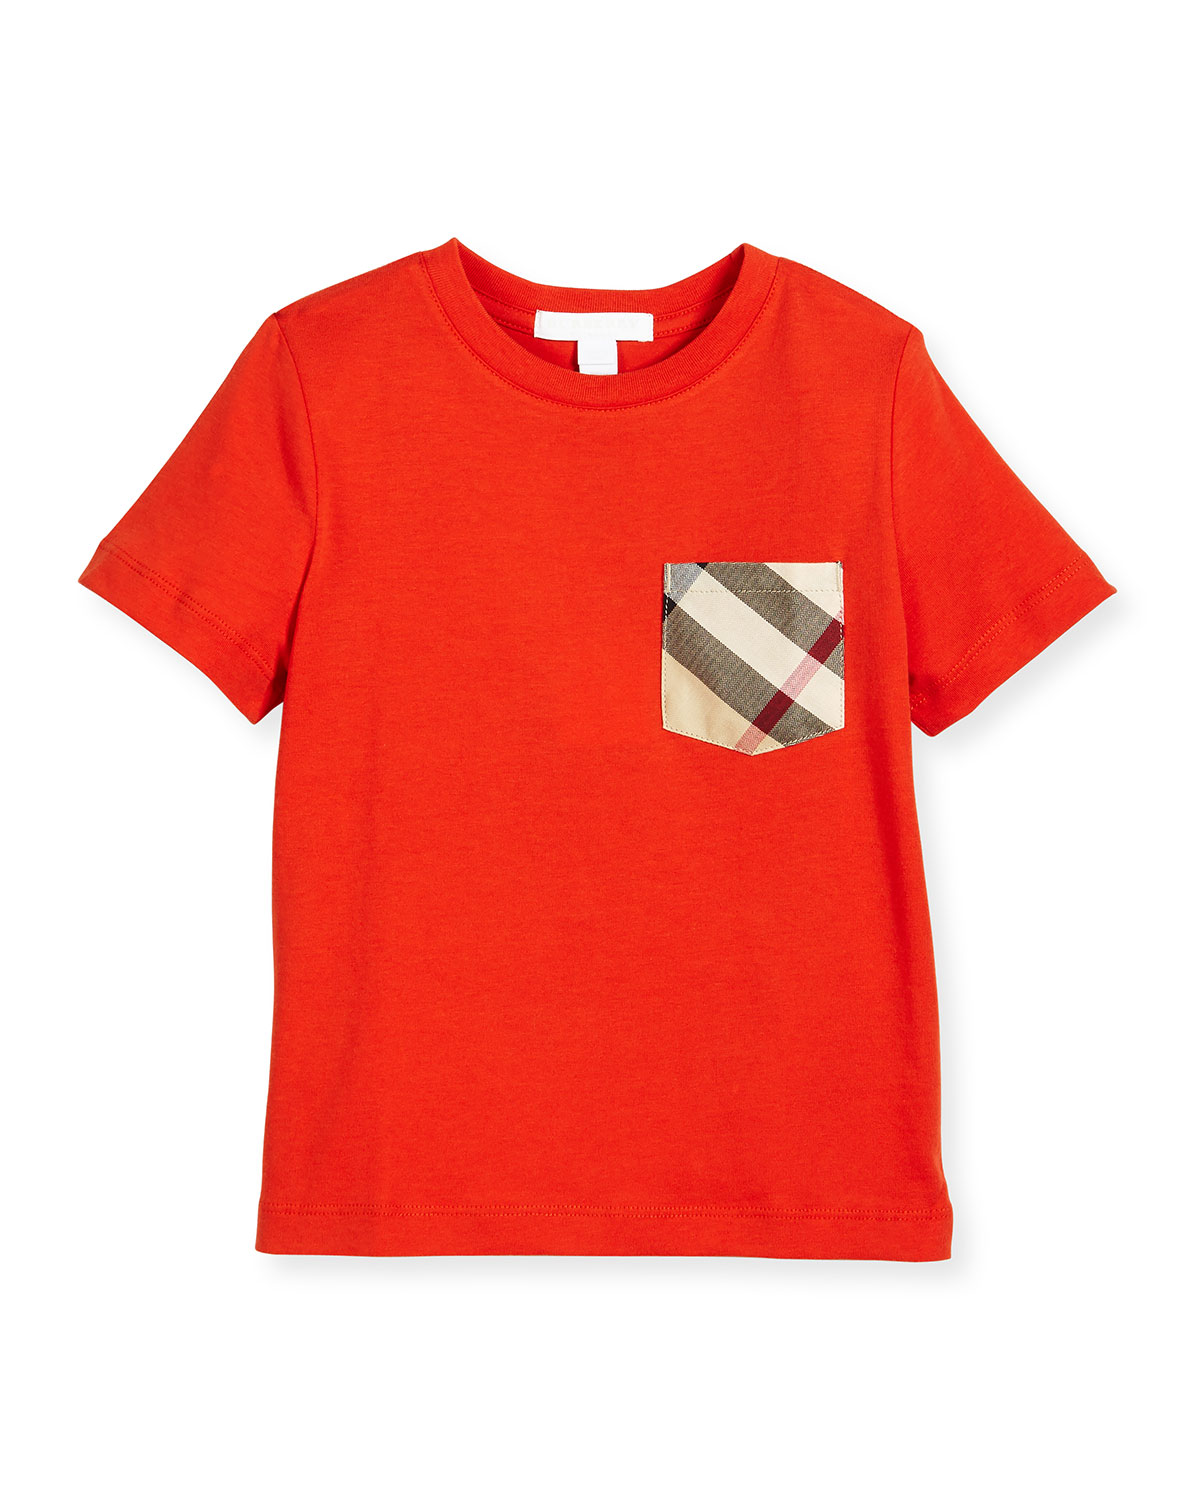 YNG Check-Pocket Jersey Tee, Orange-Red, Size 4-14